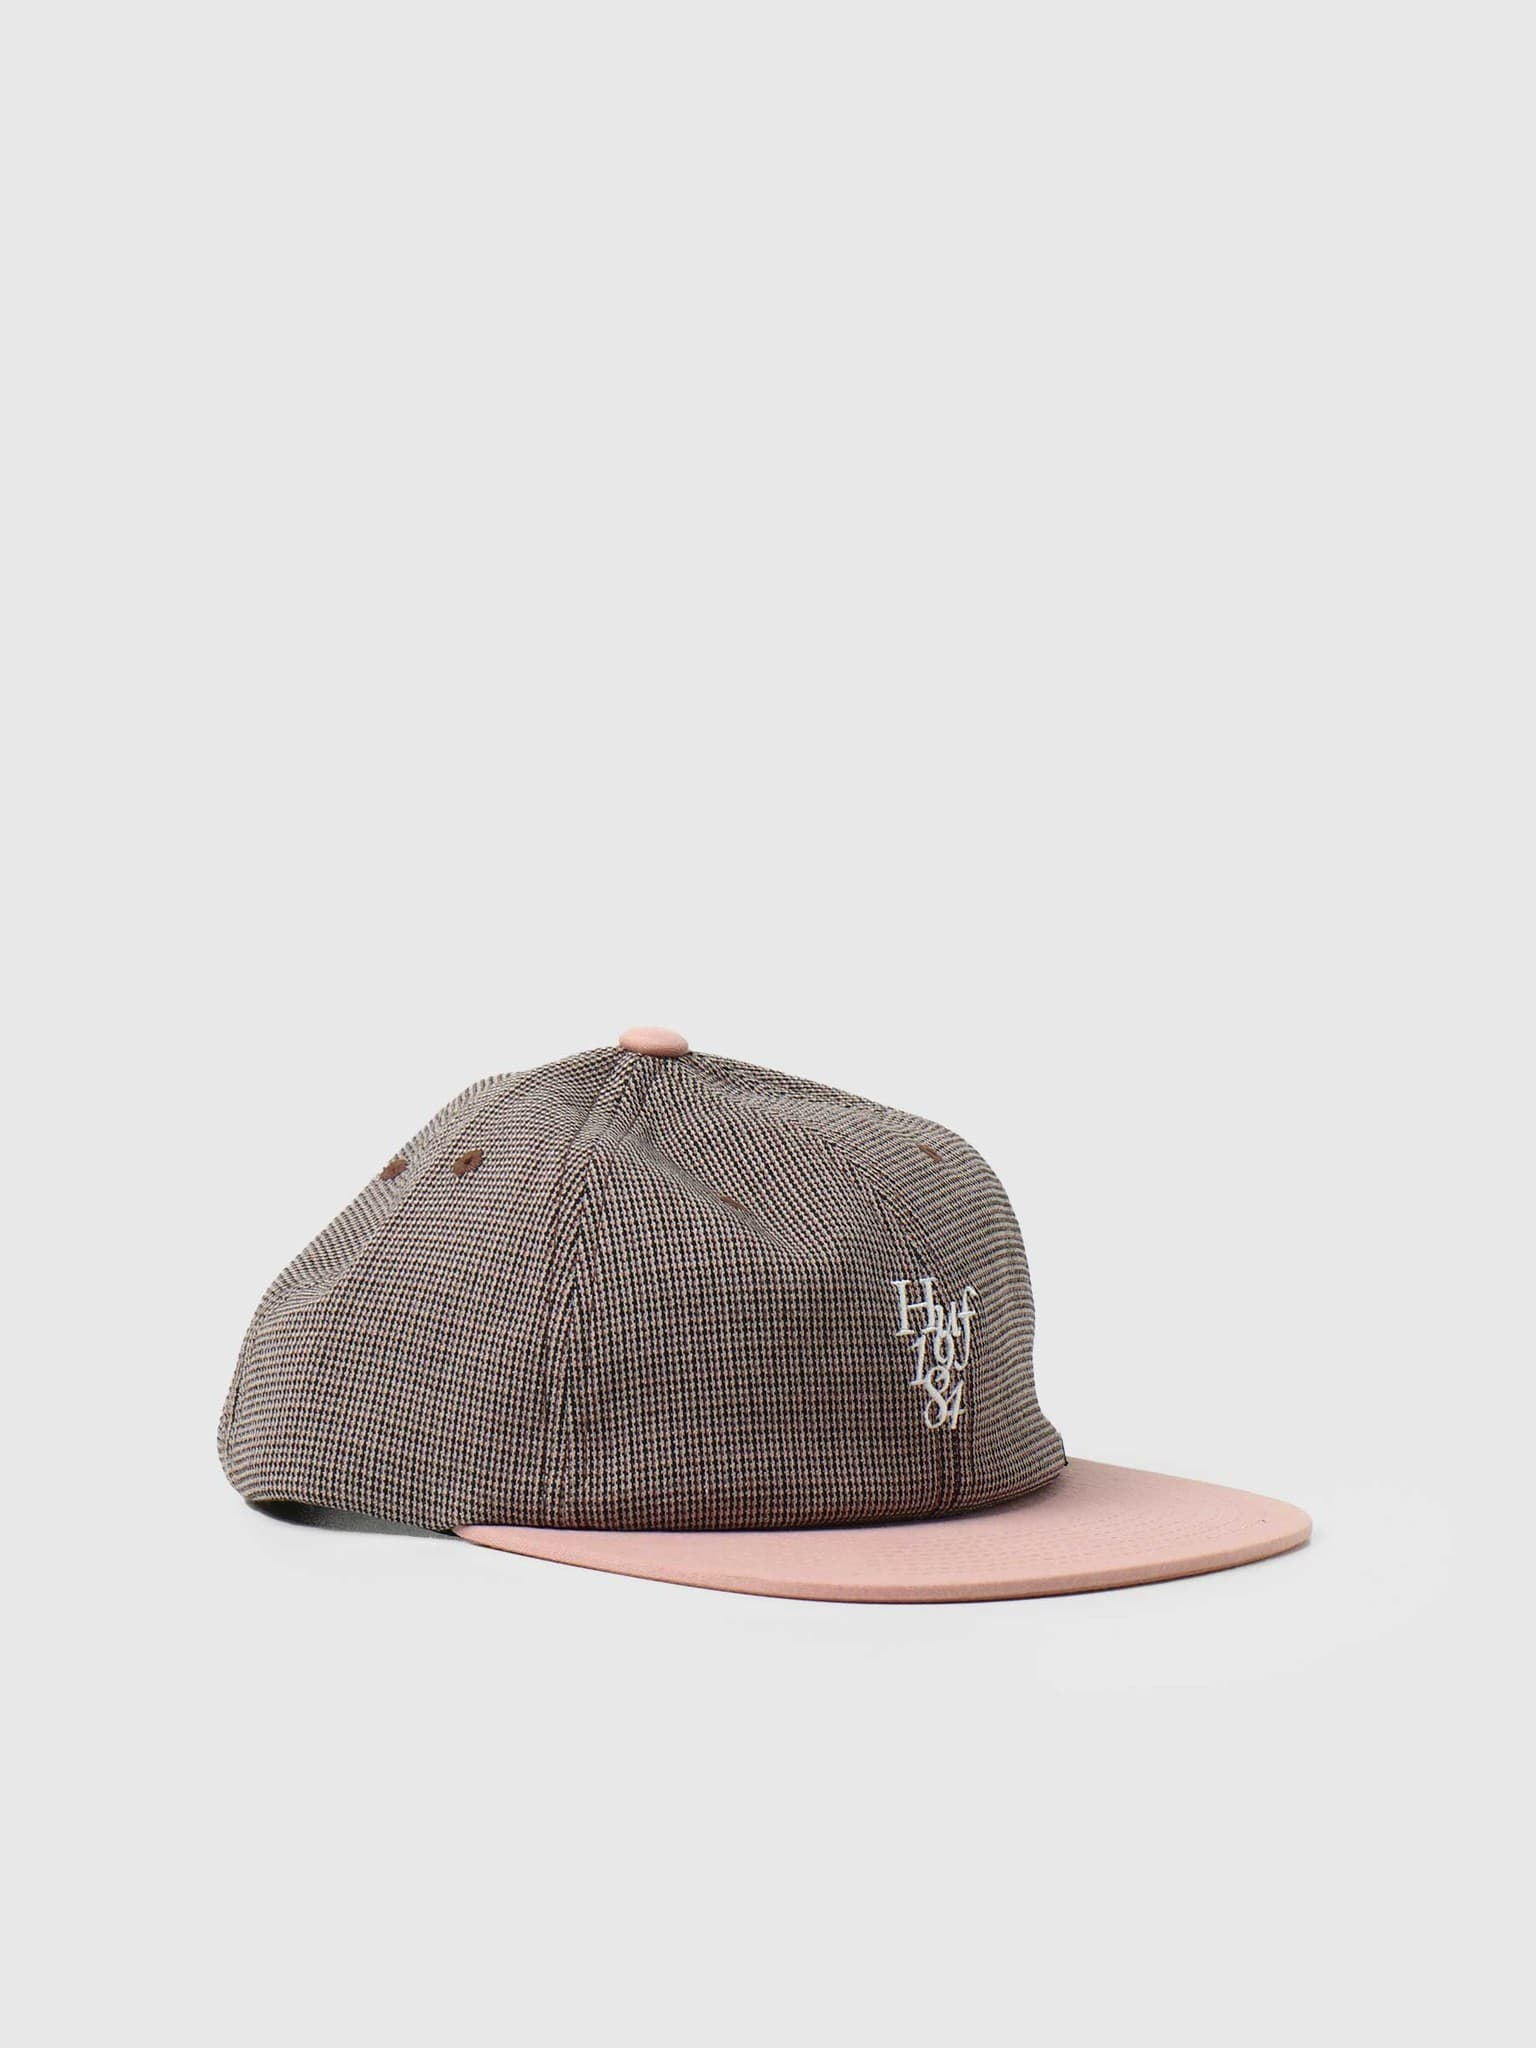 Micro Houndstooth 6 Panel Hat Dusty Rose HT00554